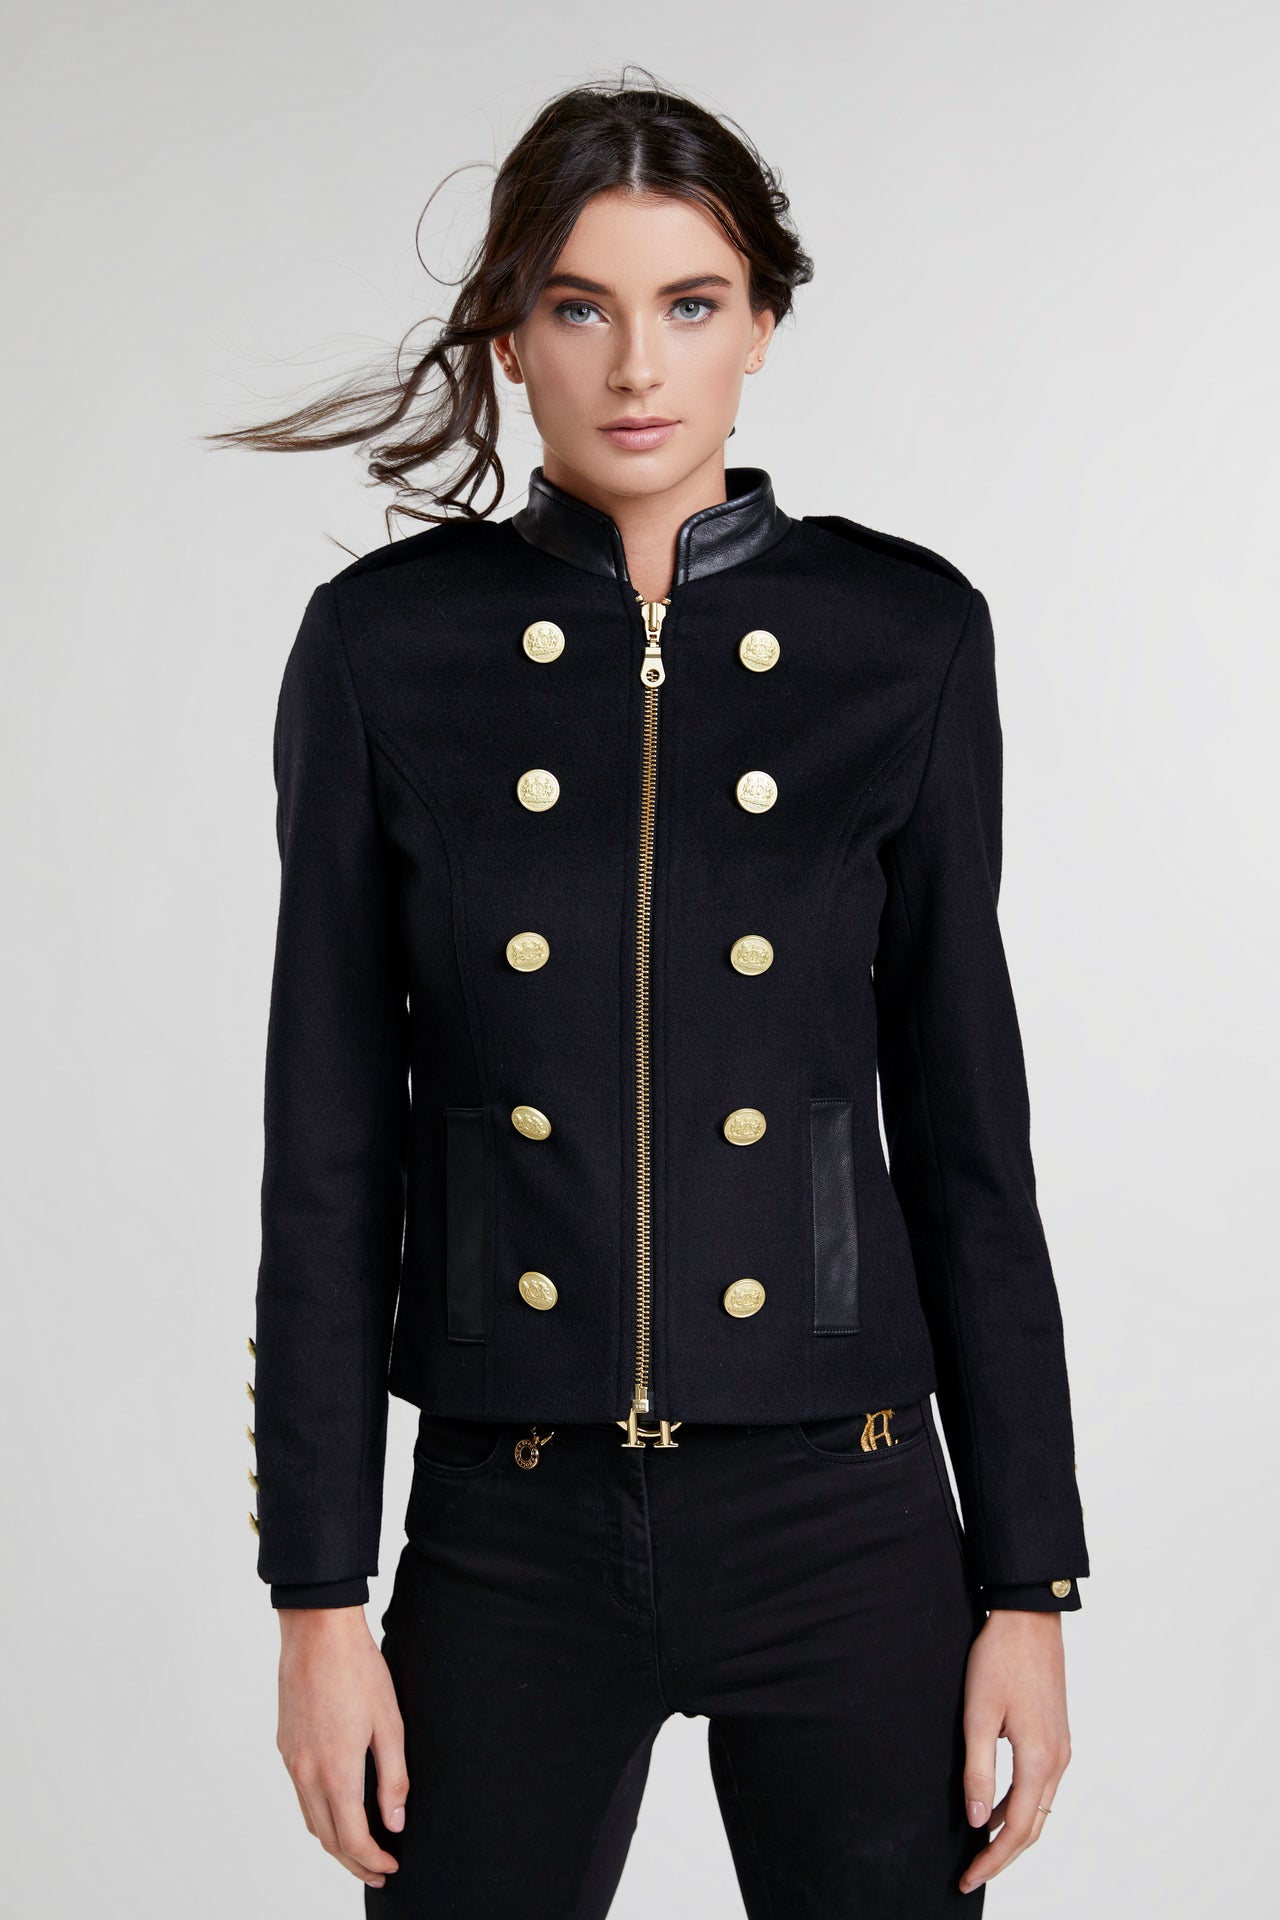 Windsor Jacket (Black)